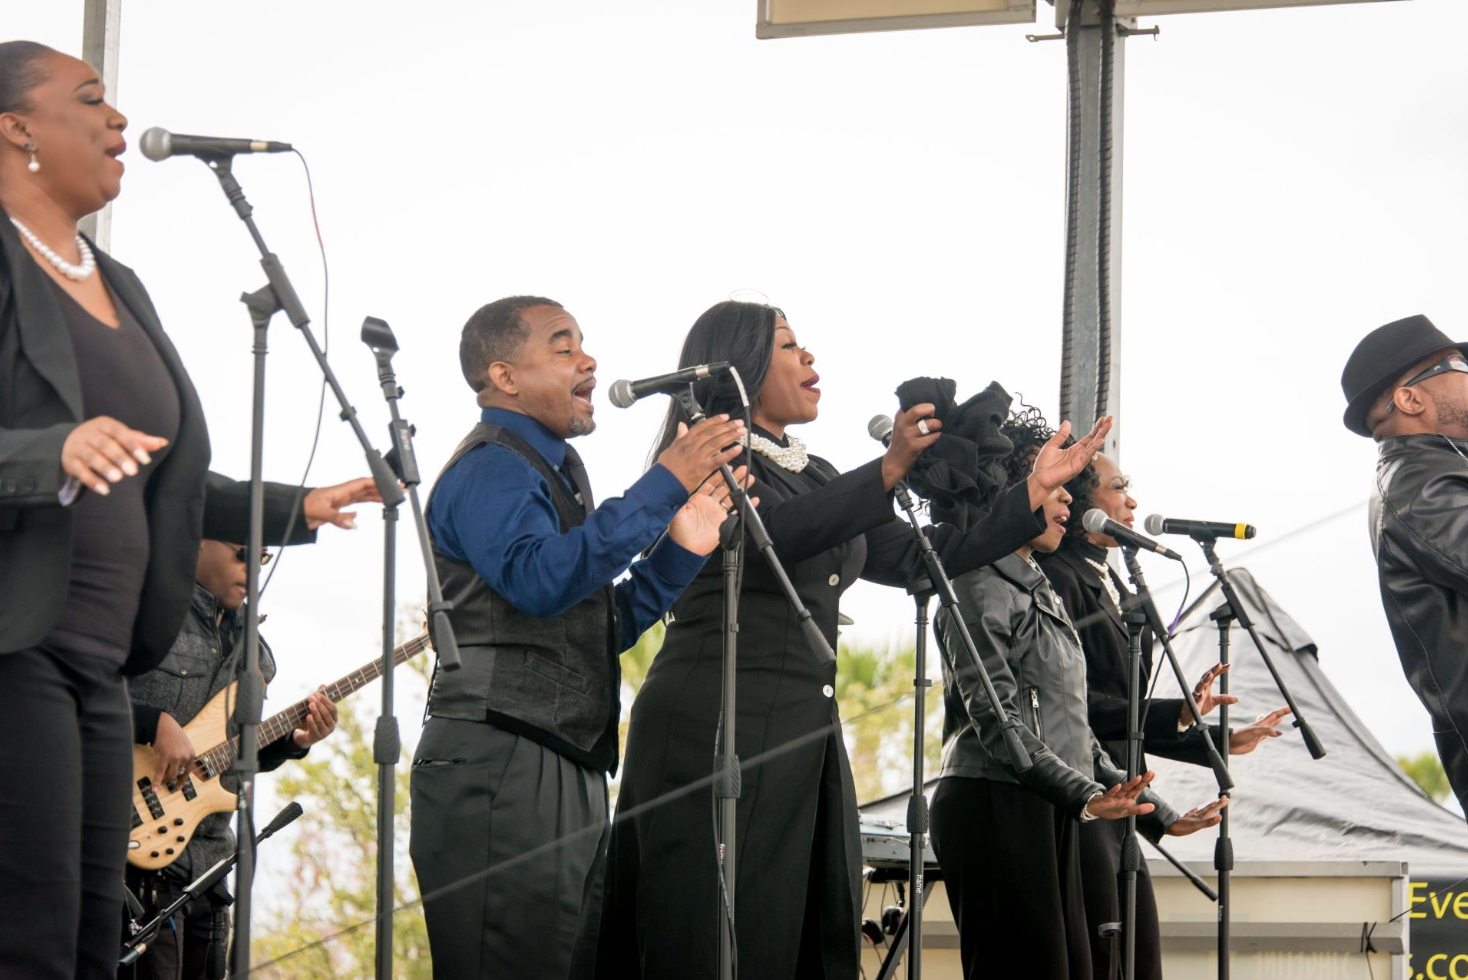 Martin Luther King, Jr. Day: image of live performances at Kissimmee's Martin Luther King, Jr. Unity Celebration